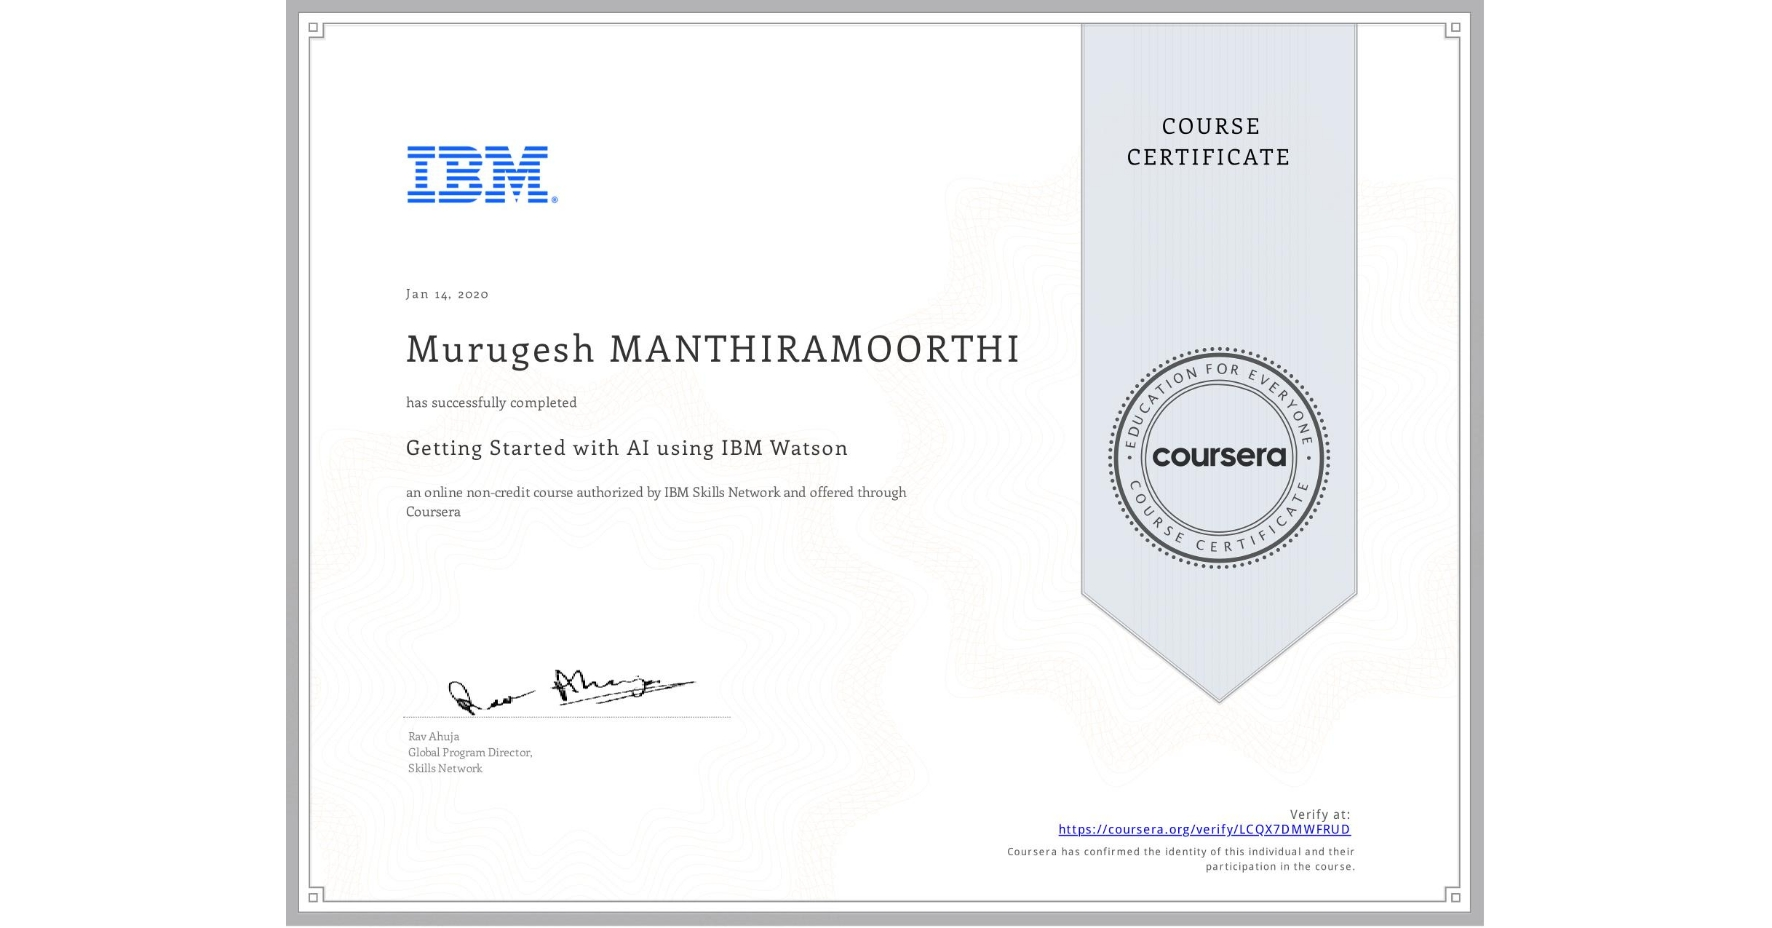 View certificate for Murugesh Manthiramoorthi, Getting Started with AI using IBM Watson, an online non-credit course authorized by IBM and offered through Coursera